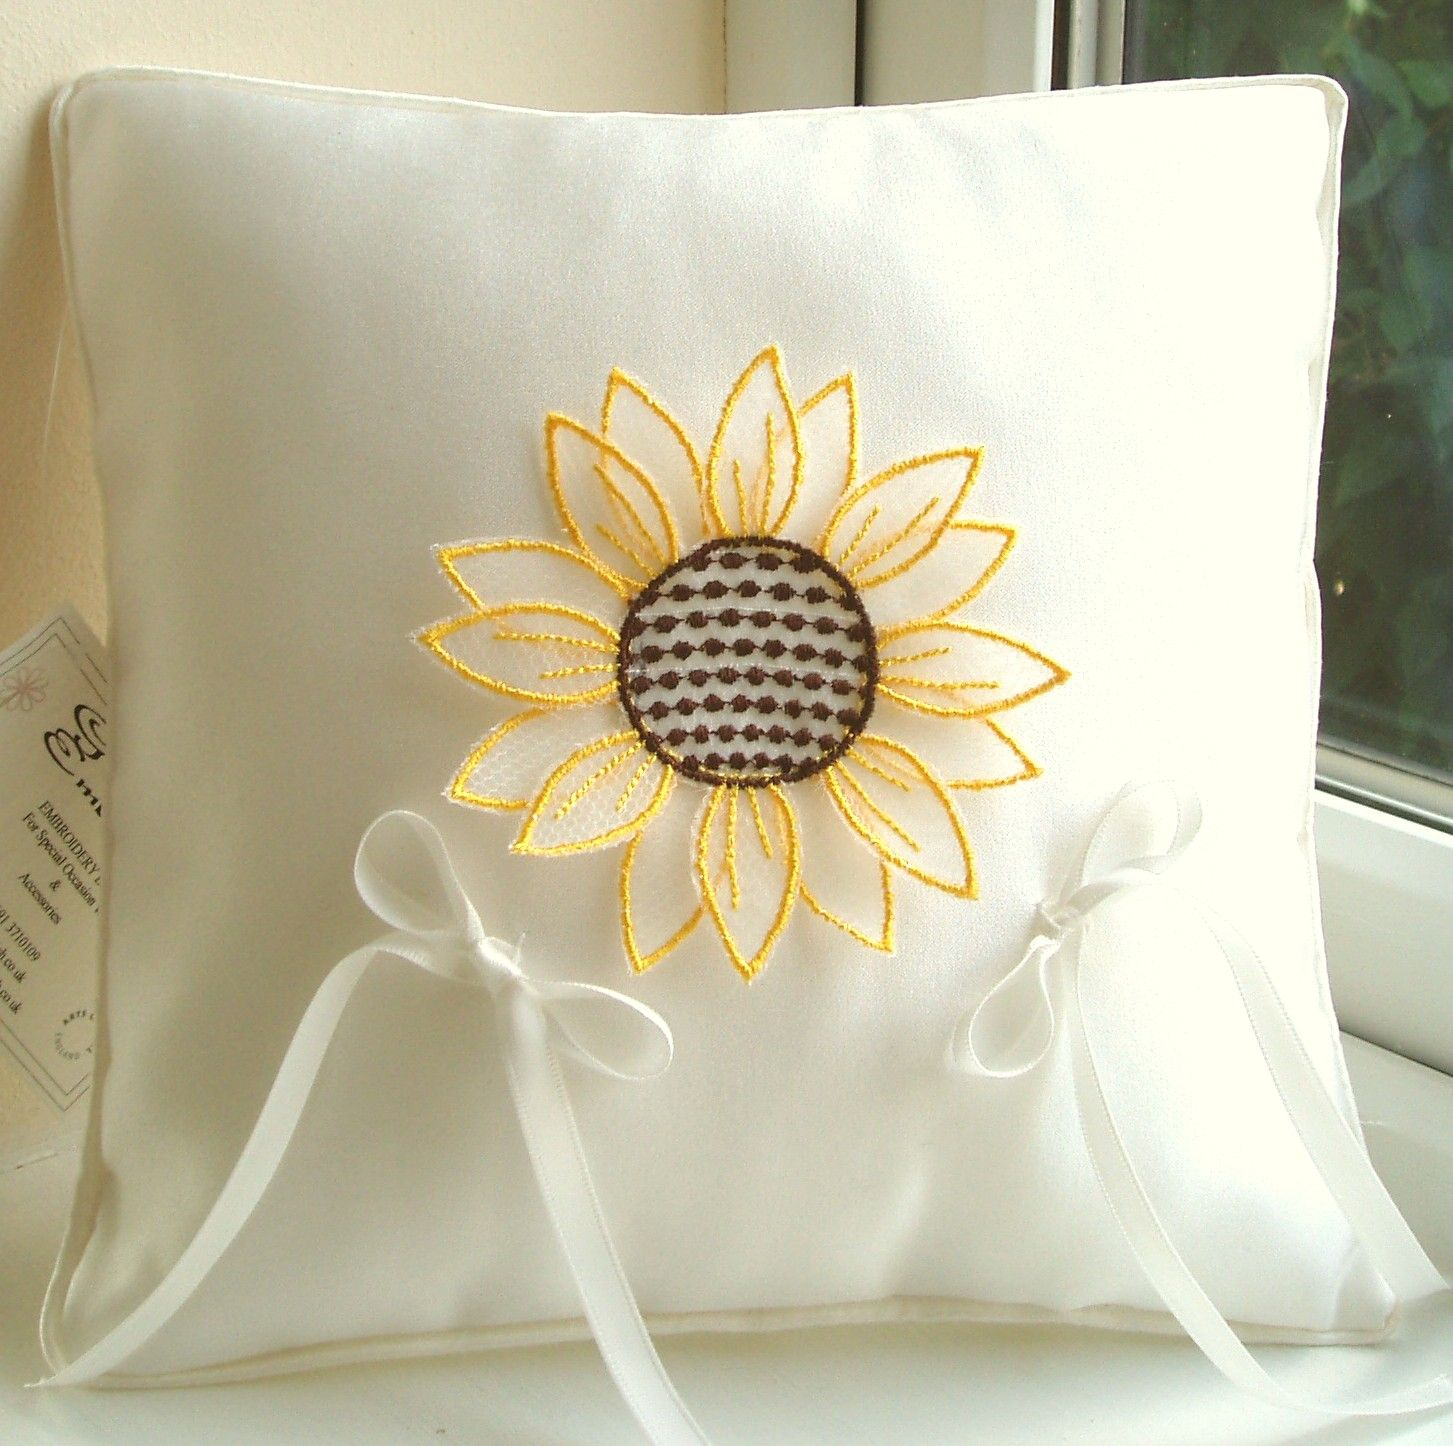 Sunflower wedding ring pillow embroidered organza flower. & Sunflower wedding ring pillow embroidered organza flower ... pillowsntoast.com